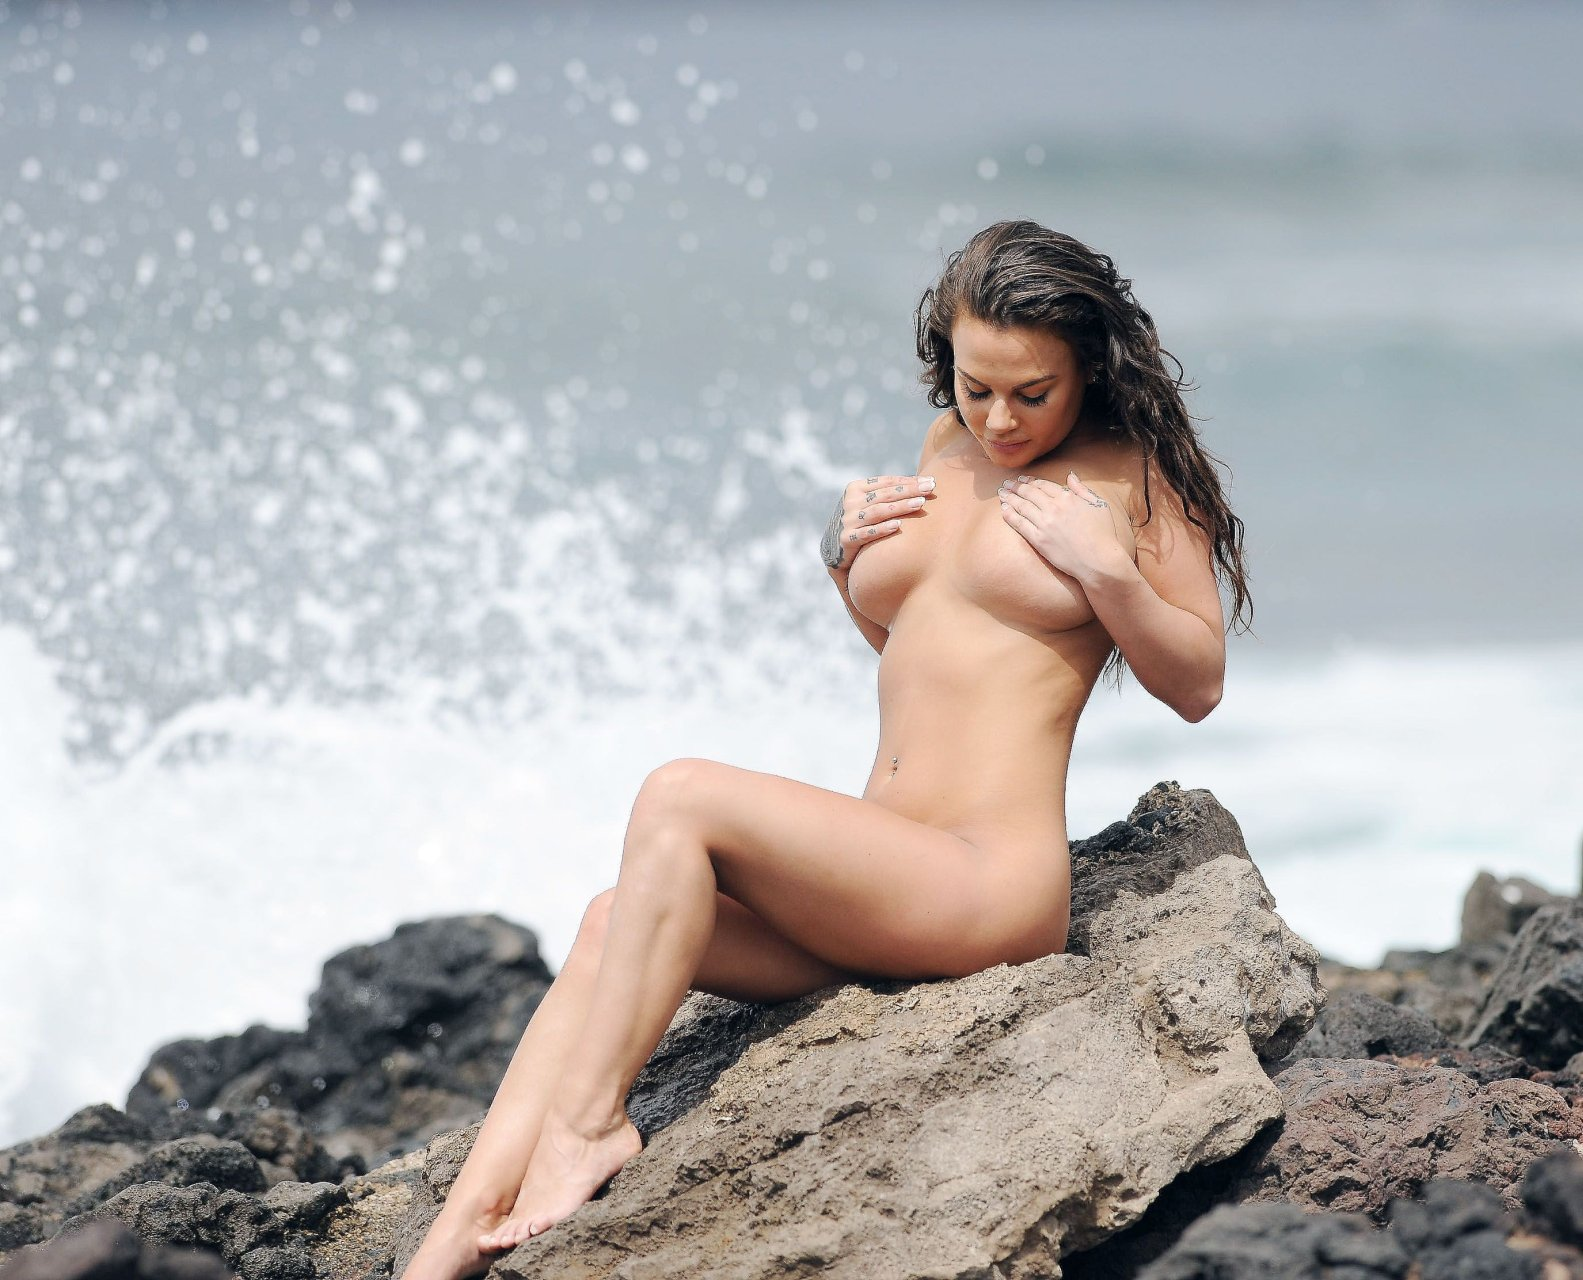 selean gome nude with cum on her